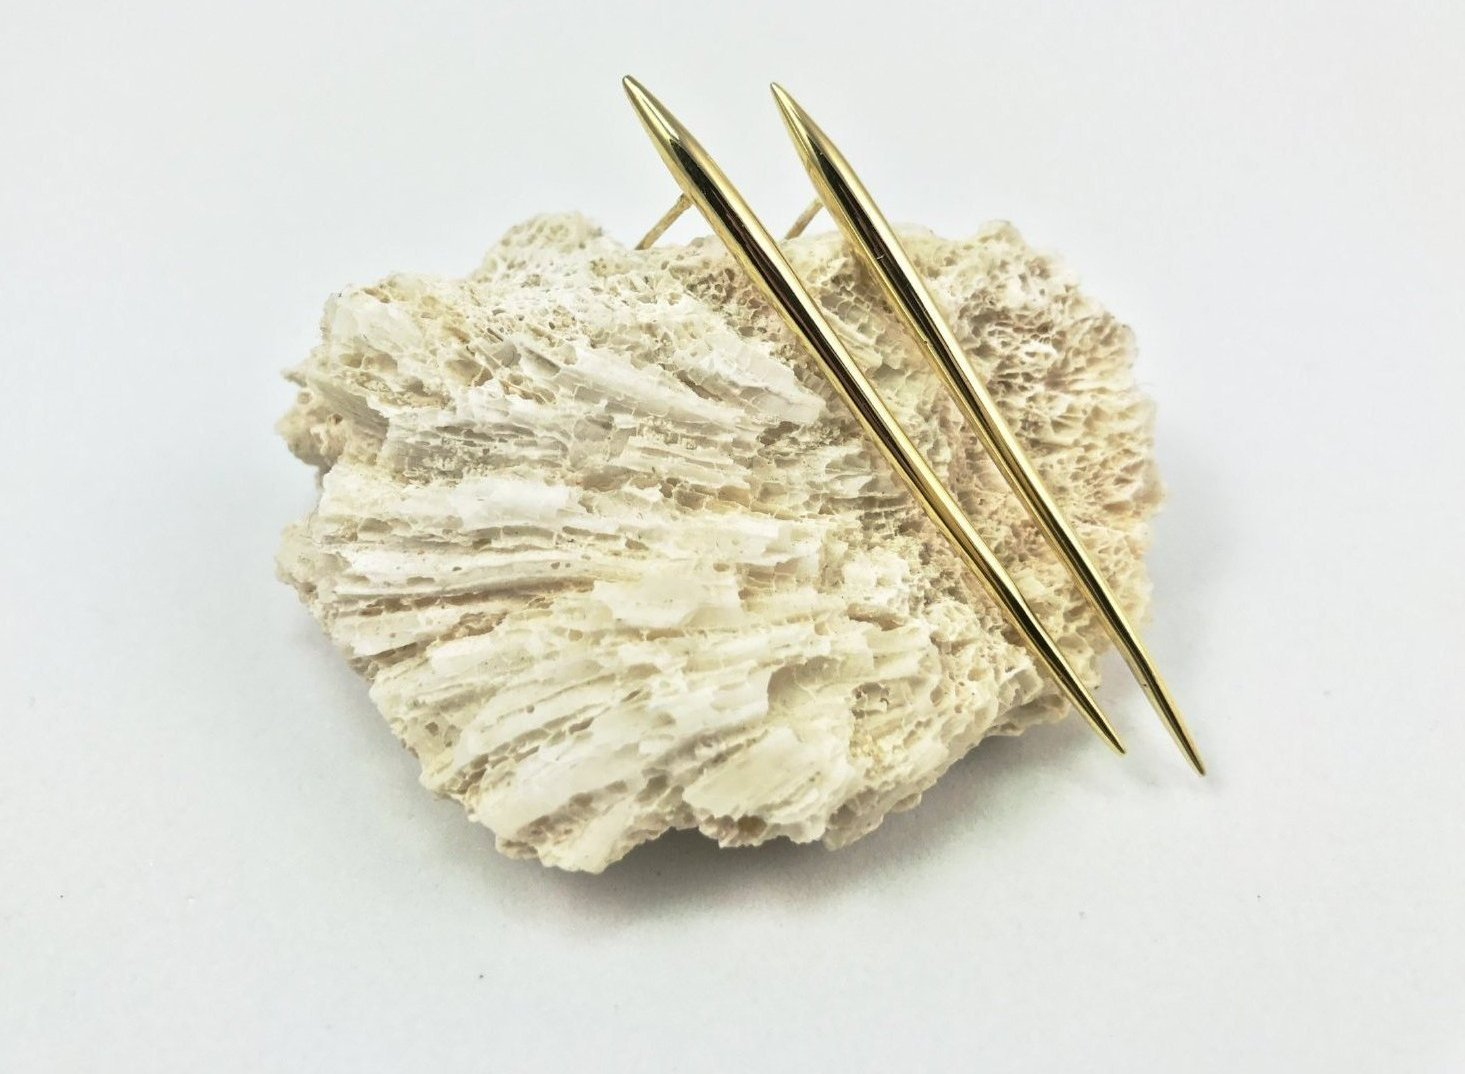 Sea urchin spine earrings, large - gold plated - Jennifer Kinnear Collection Ocean